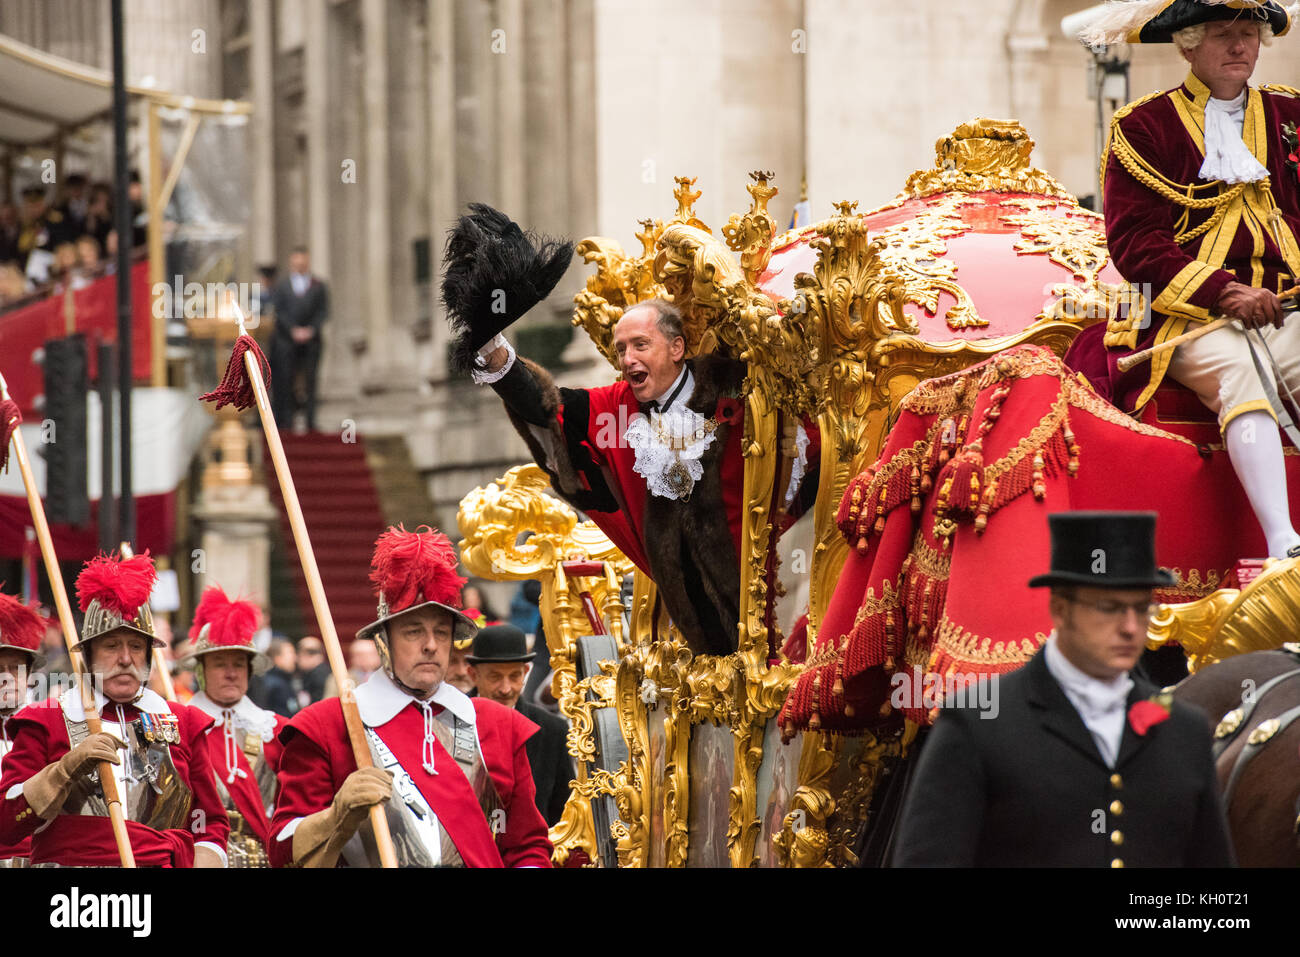 LONDON - NOVEMBER 11, 2017: The incoming Lord Mayor of London at the annual Lord Mayor's Show in the City of - Stock Image